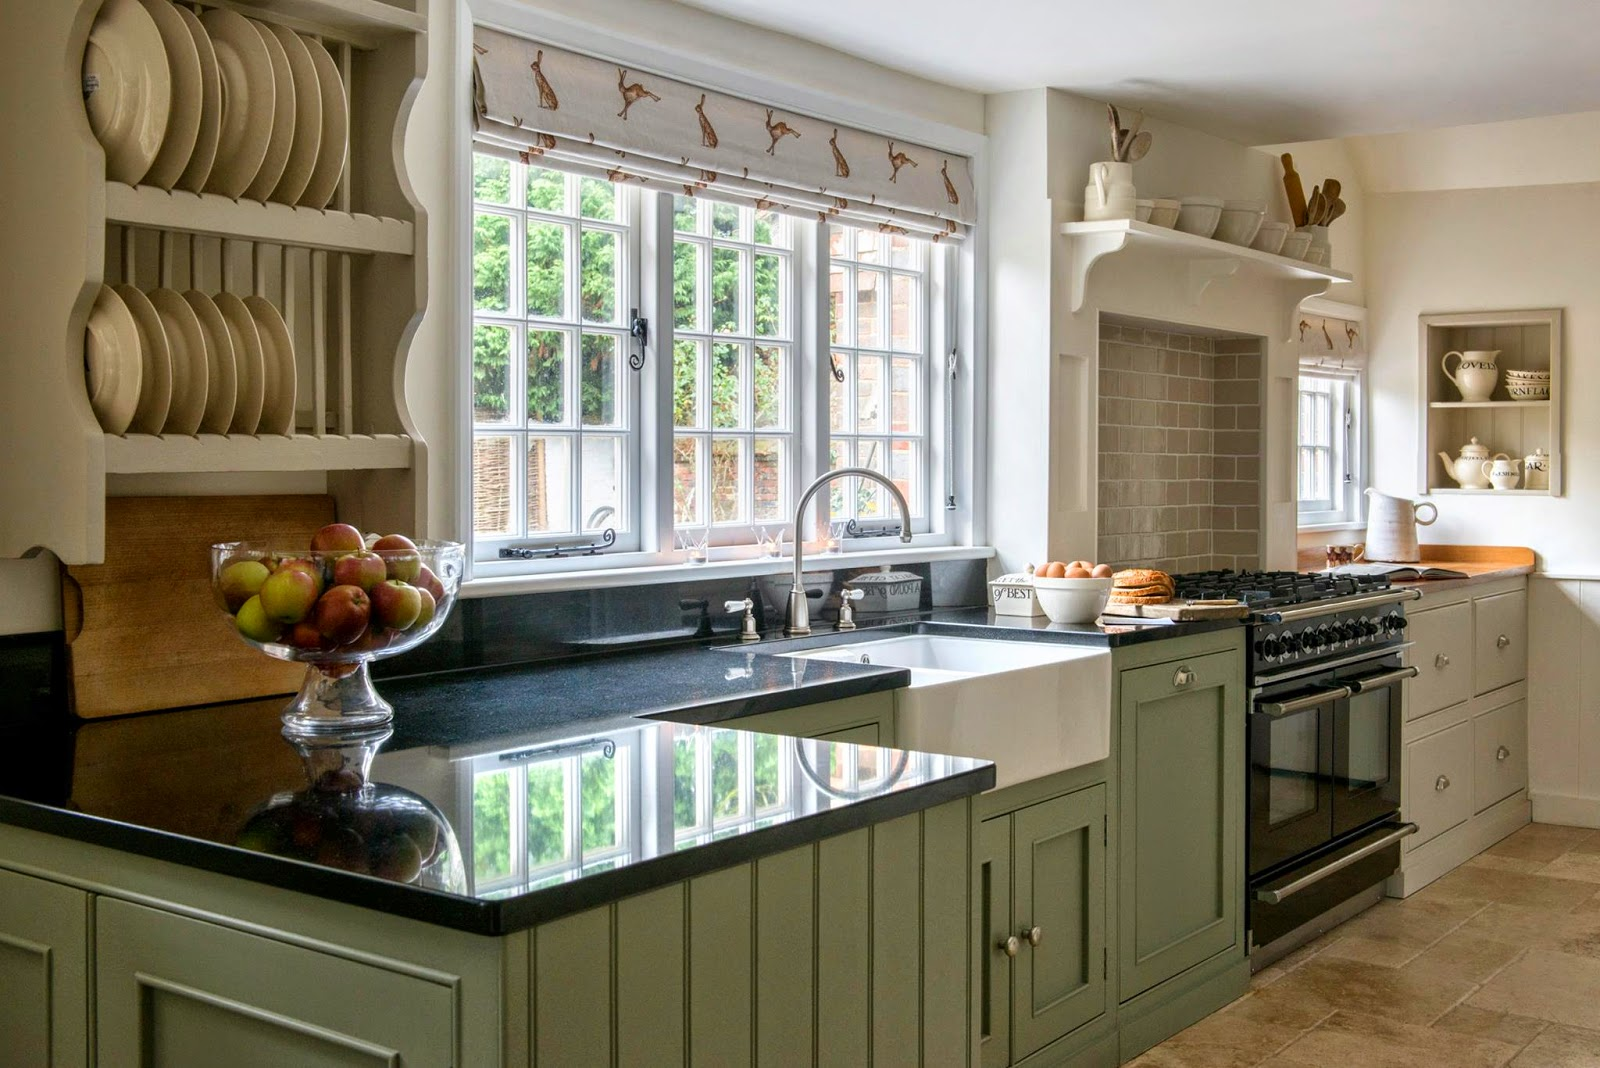 heathers country kitchen modern country style modern country kitchen and colour scheme 1600